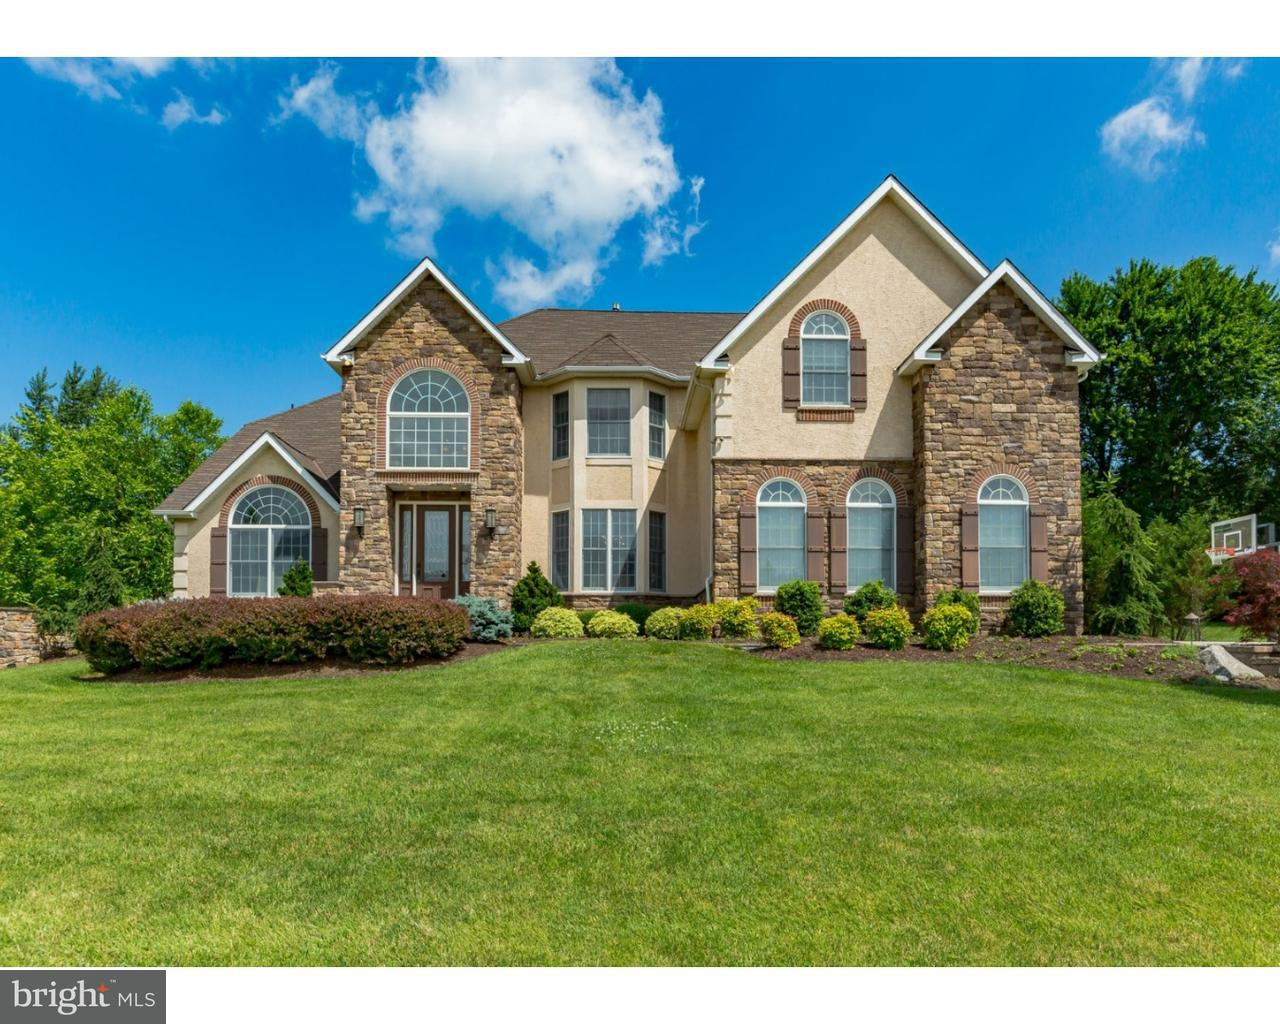 Single Family Home for Sale at 6 MANOR HOUSE Court Cherry Hill, New Jersey 08003 United States